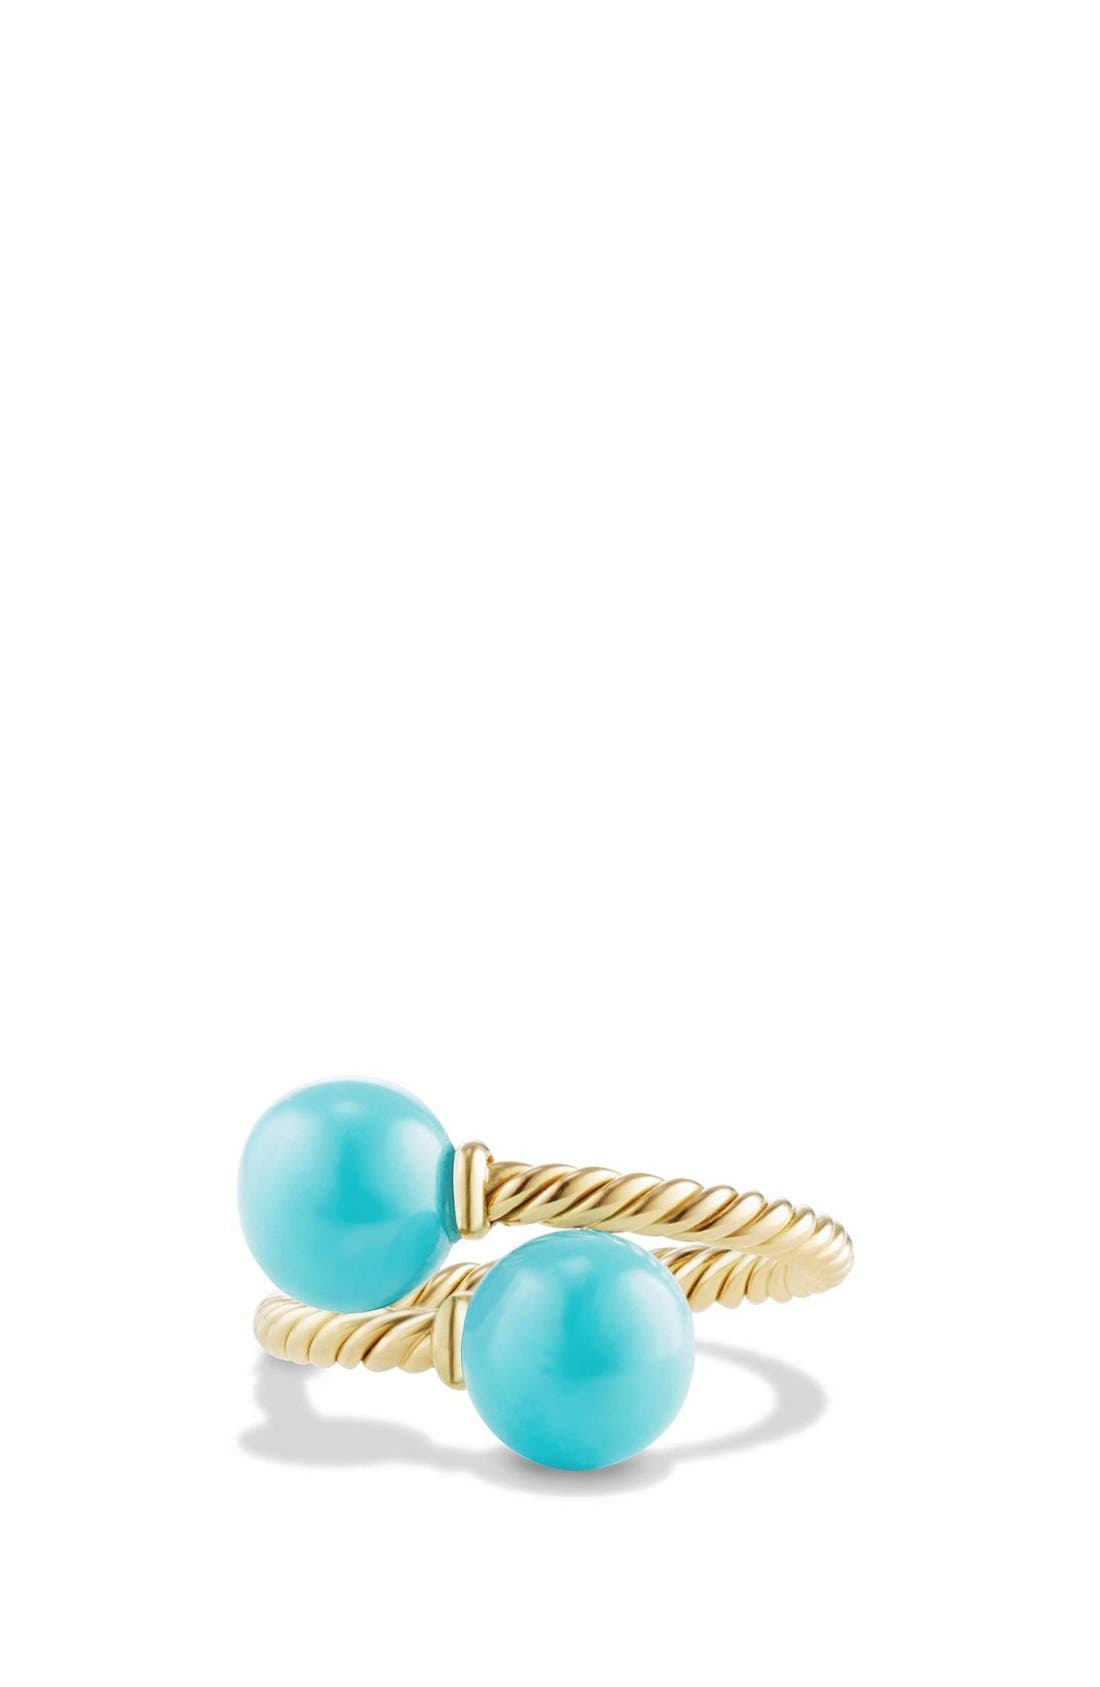 DAVID YURMAN Solari Bead Ring with Turquoise in 18K Gold